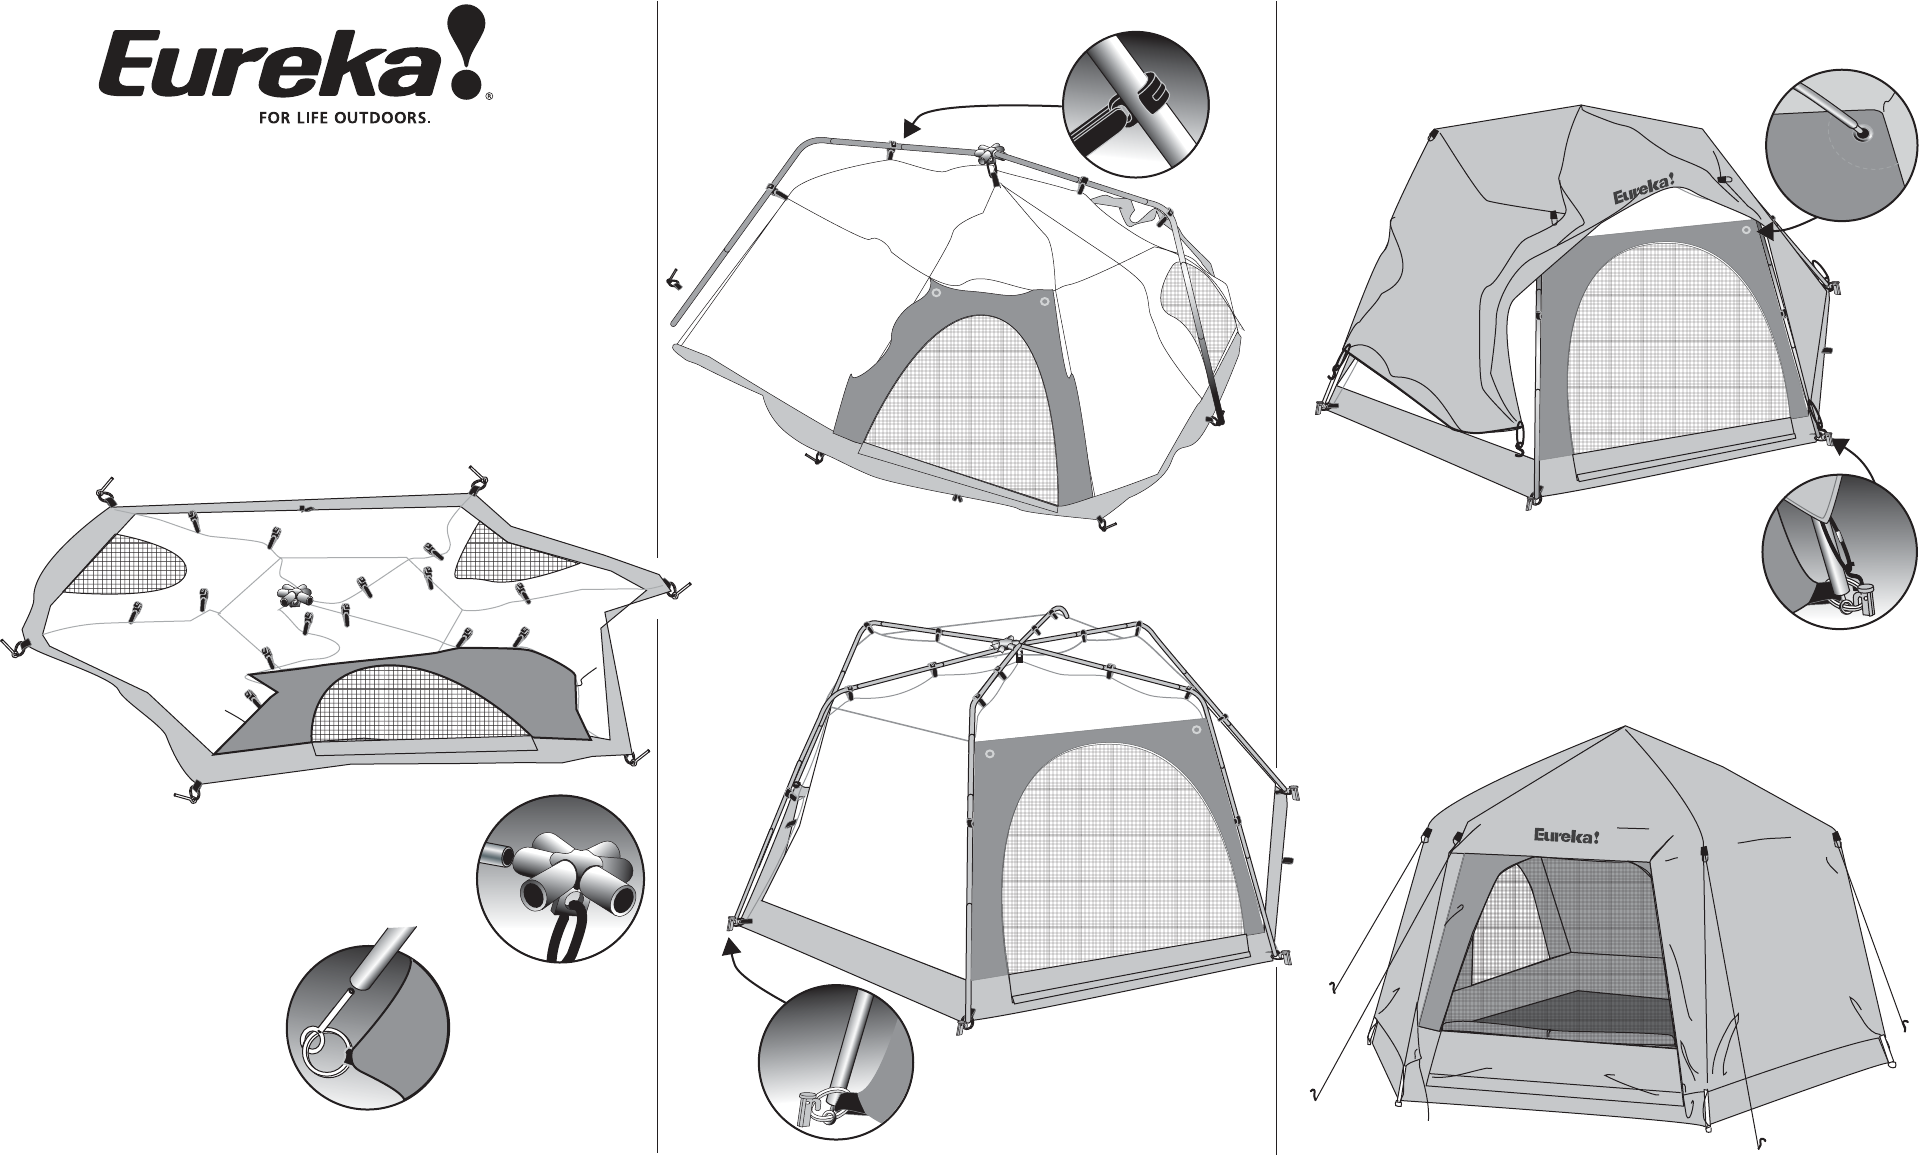 Tents Equinox 6 Tent User Manual  sc 1 st  Fitness Equipment Manuals - ManualsOnline.com & Eureka! Tents Tent Equinox 6 User Guide | ManualsOnline.com